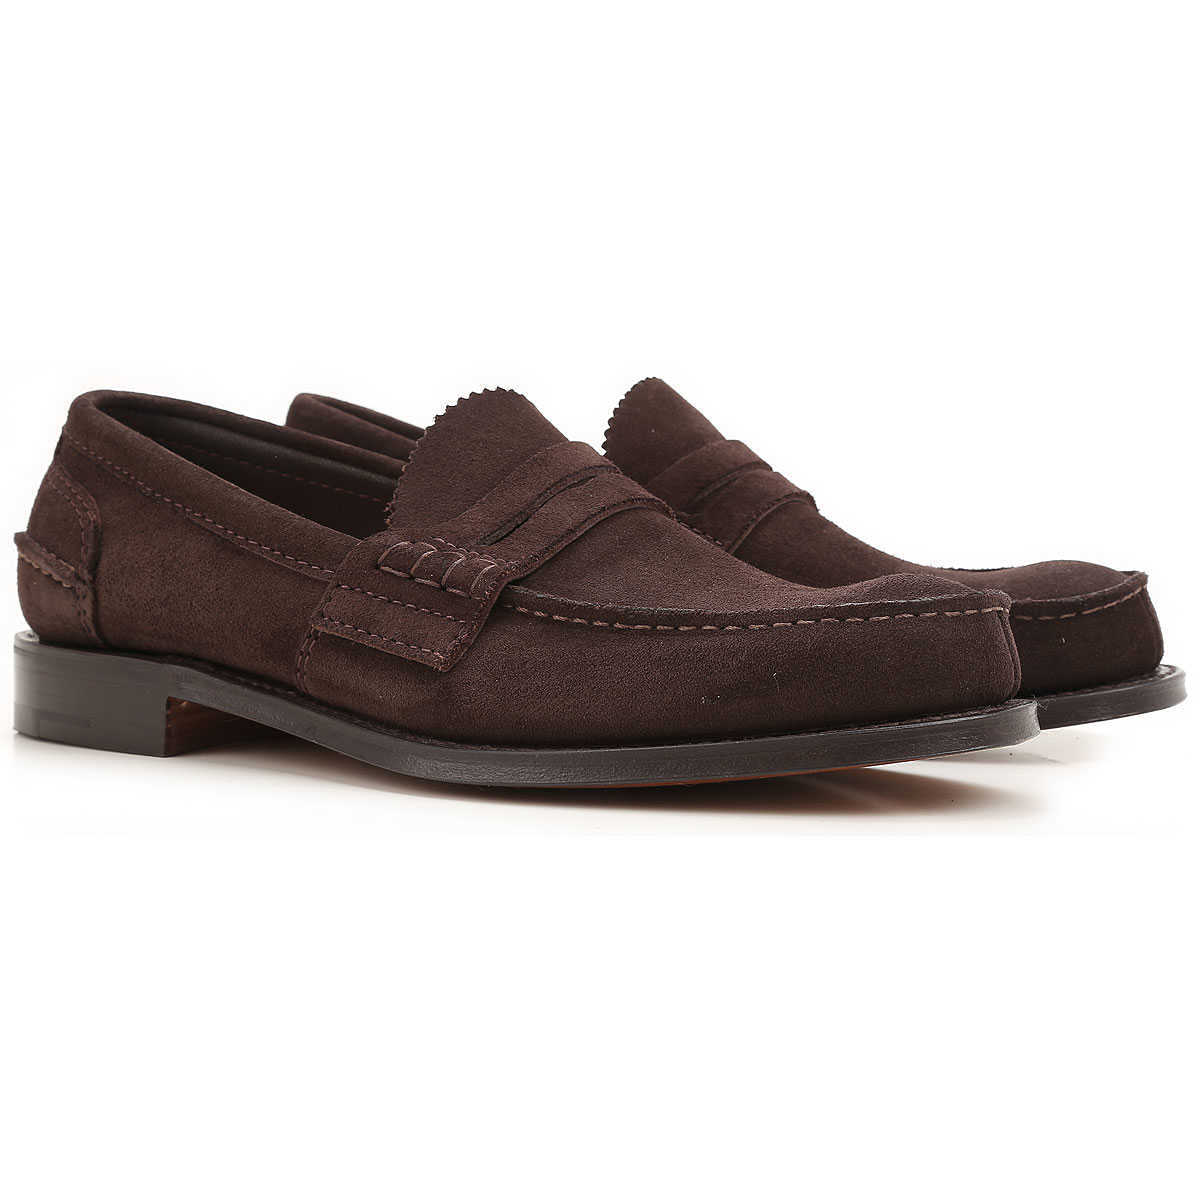 Church's Loafers for Men On Sale Brown DK - GOOFASH - Mens LOAFERS